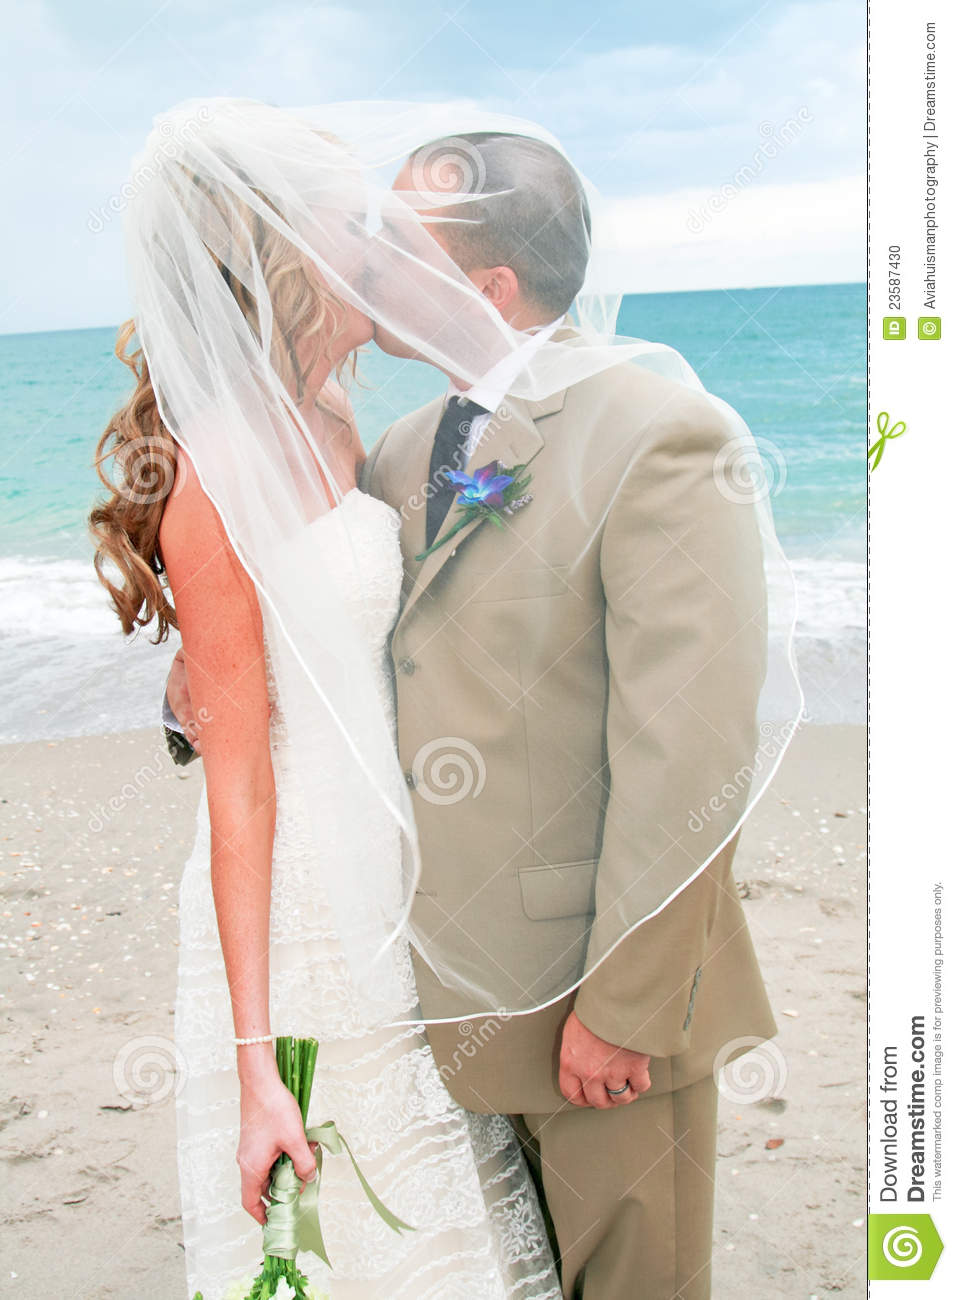 Beach Wedding Bride And Groom Kiss Stock Photo  Image 23587430